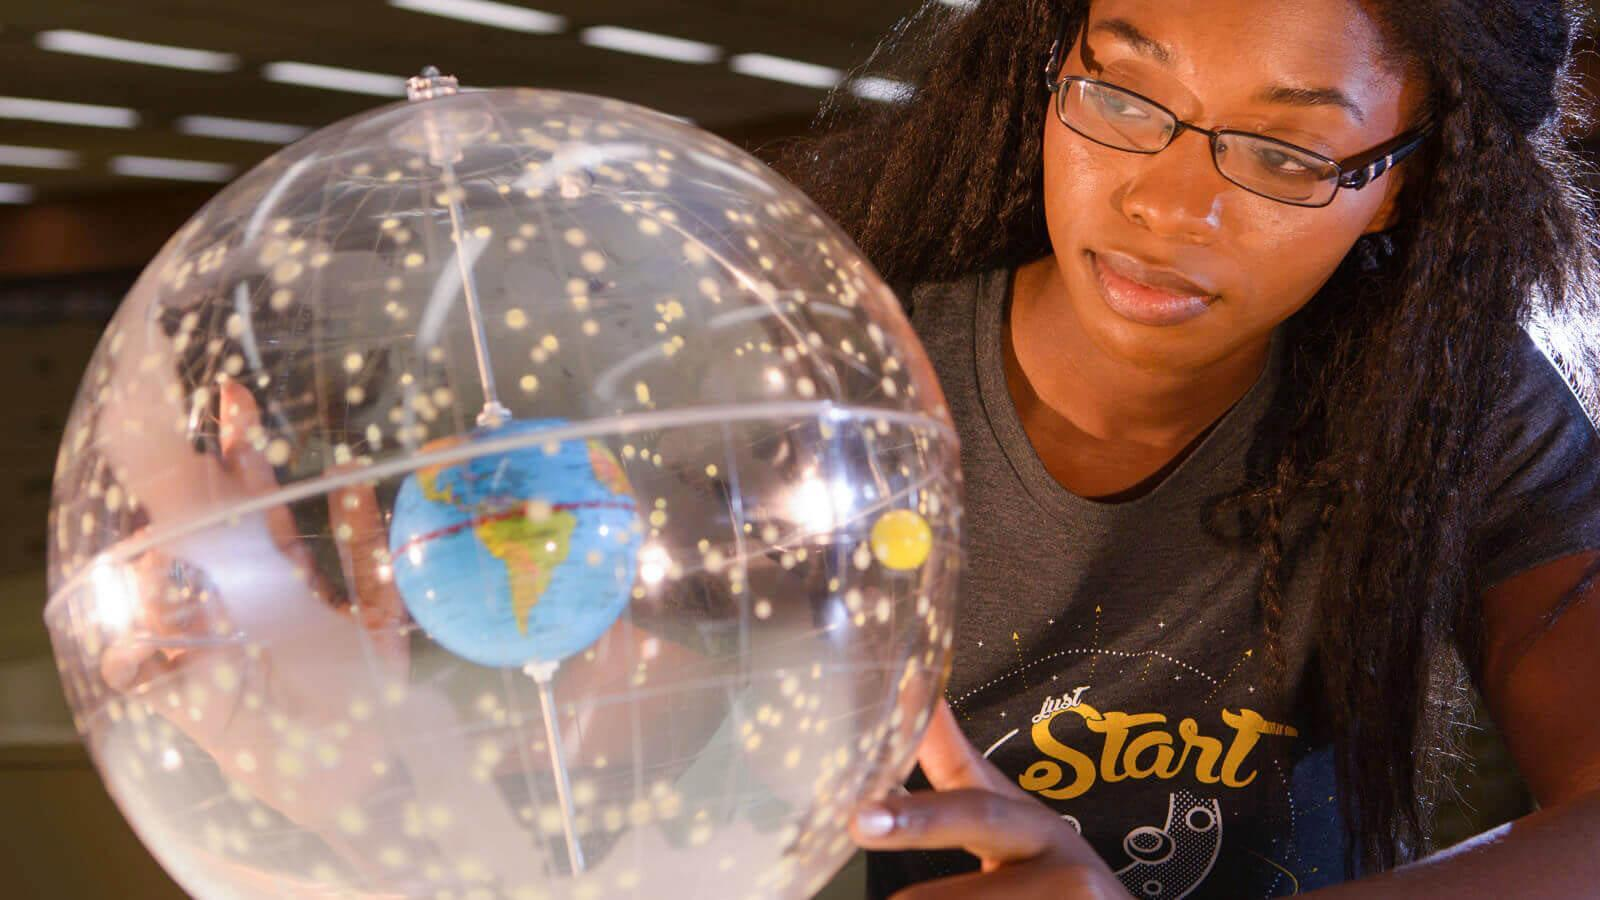 A woman looks at a globe with a star map